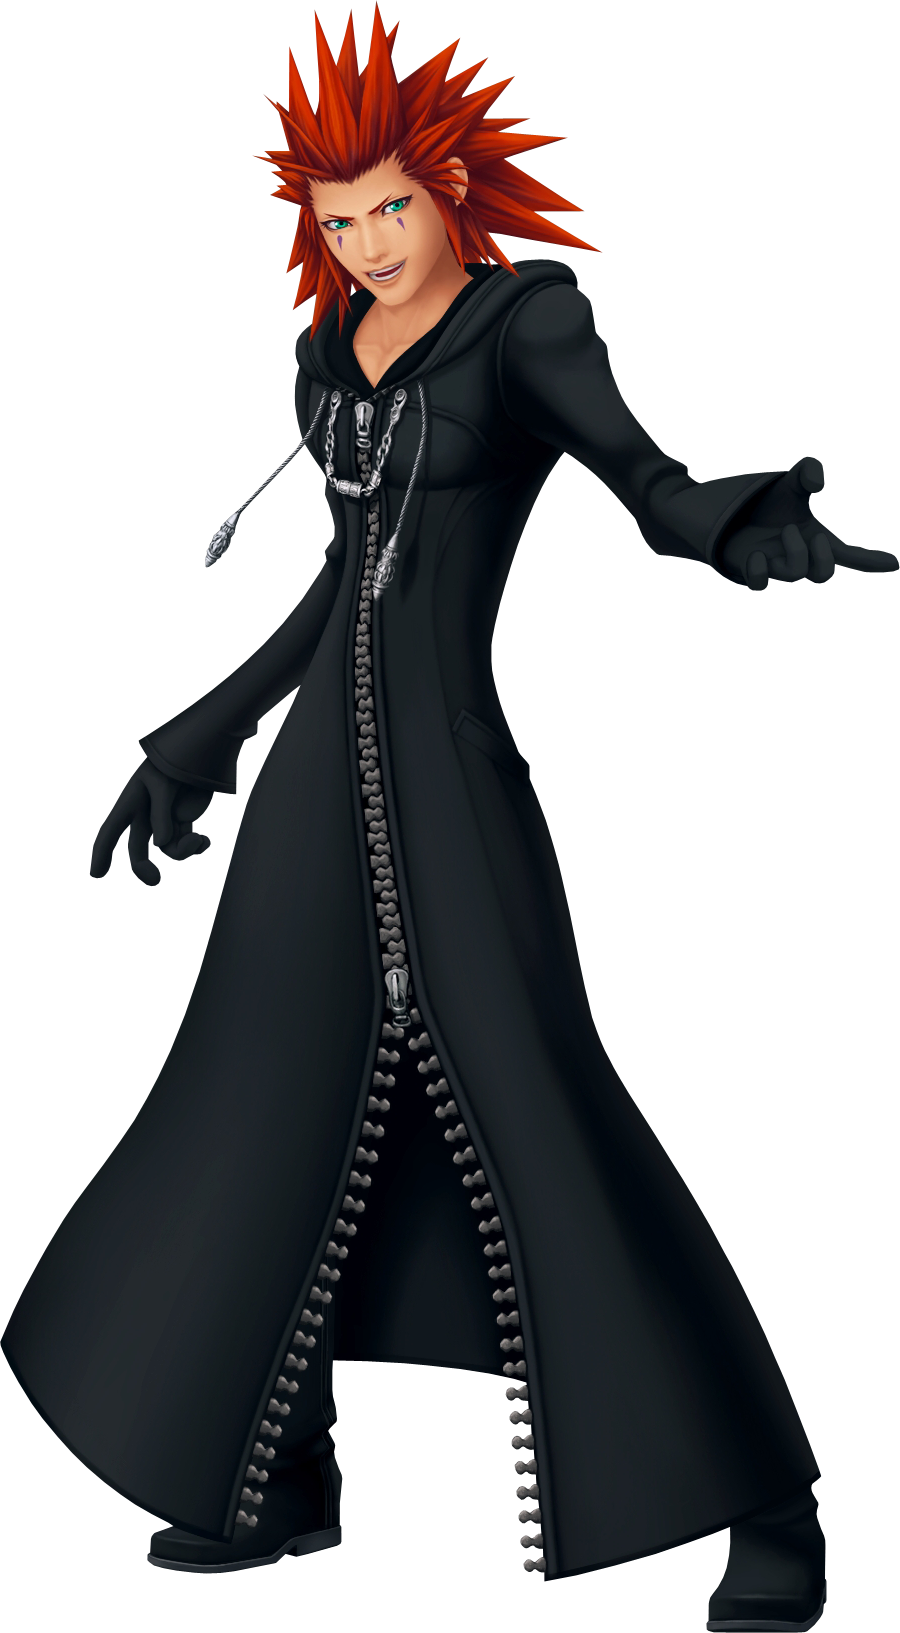 http://images3.wikia.nocookie.net/__cb20090208155551/kingdomhearts/fr/images/0/05/Axelrender.png